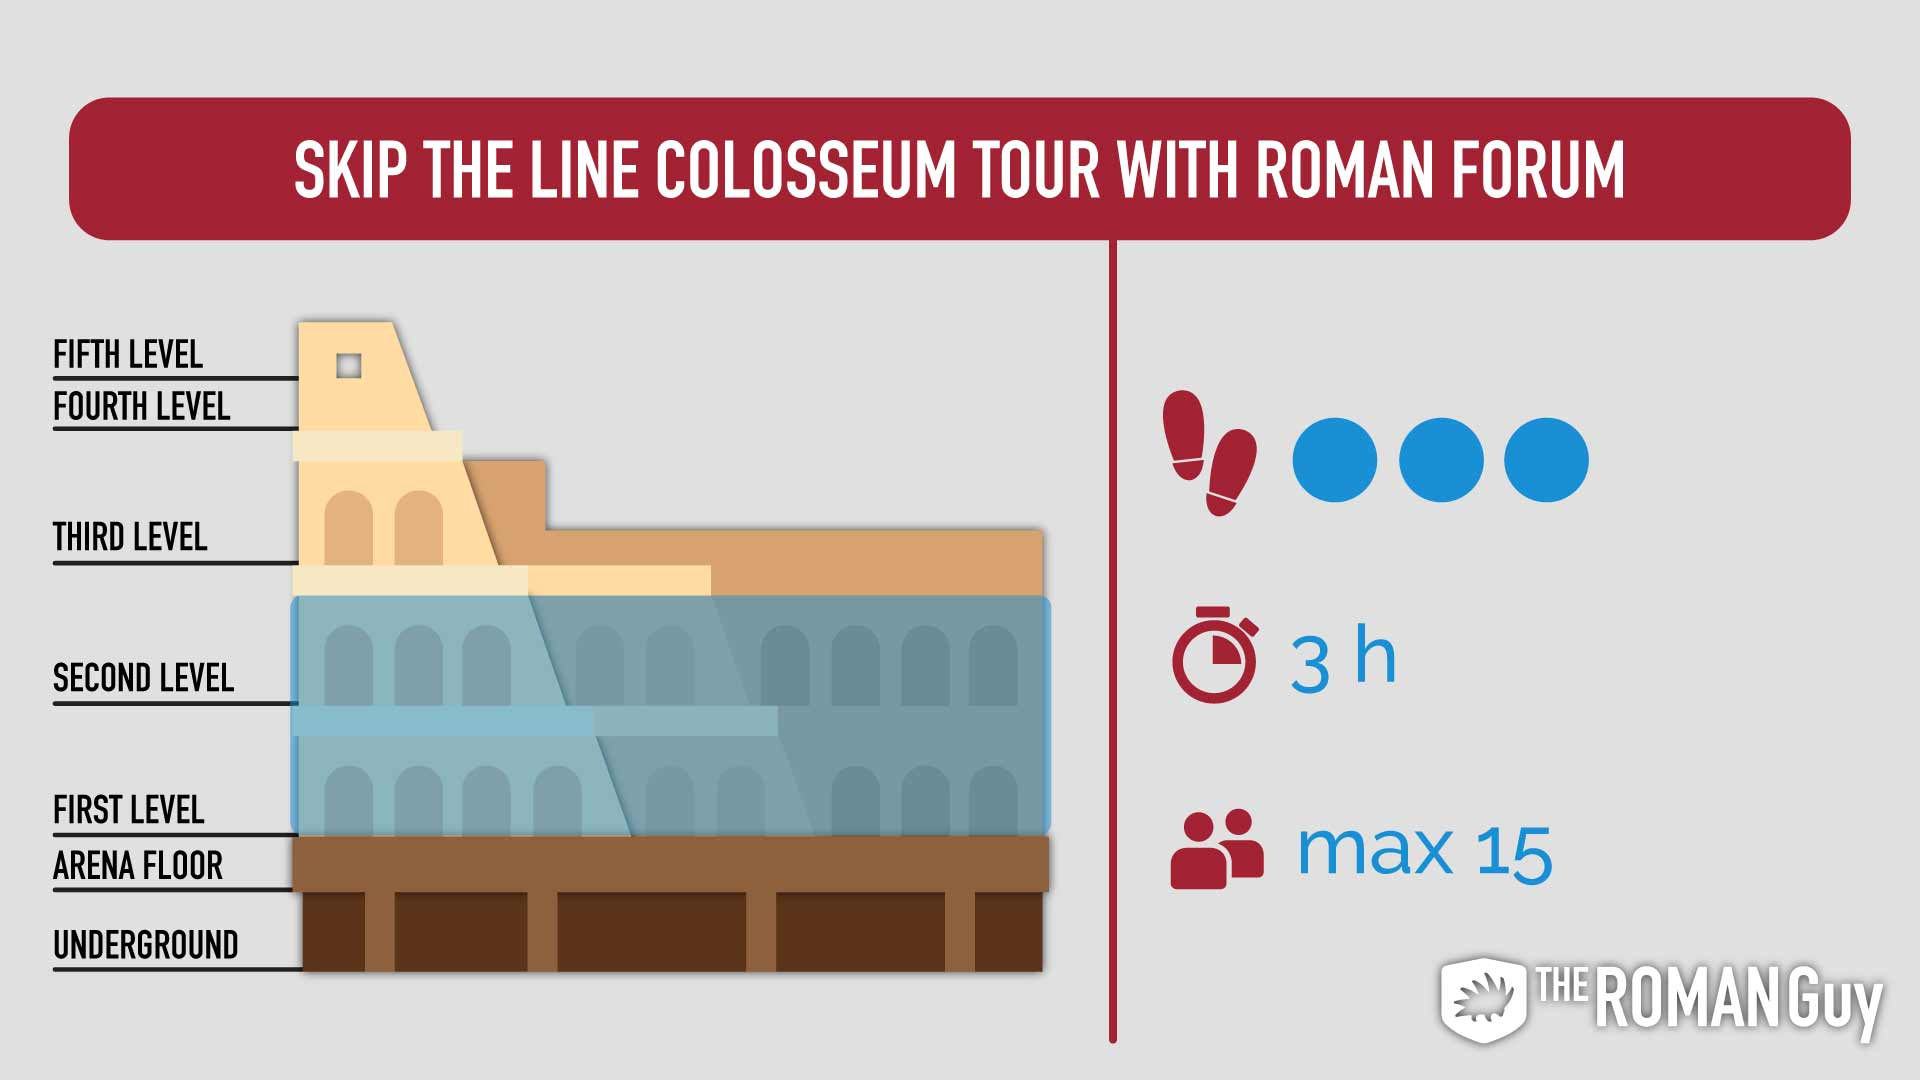 skip the line colosseum tour